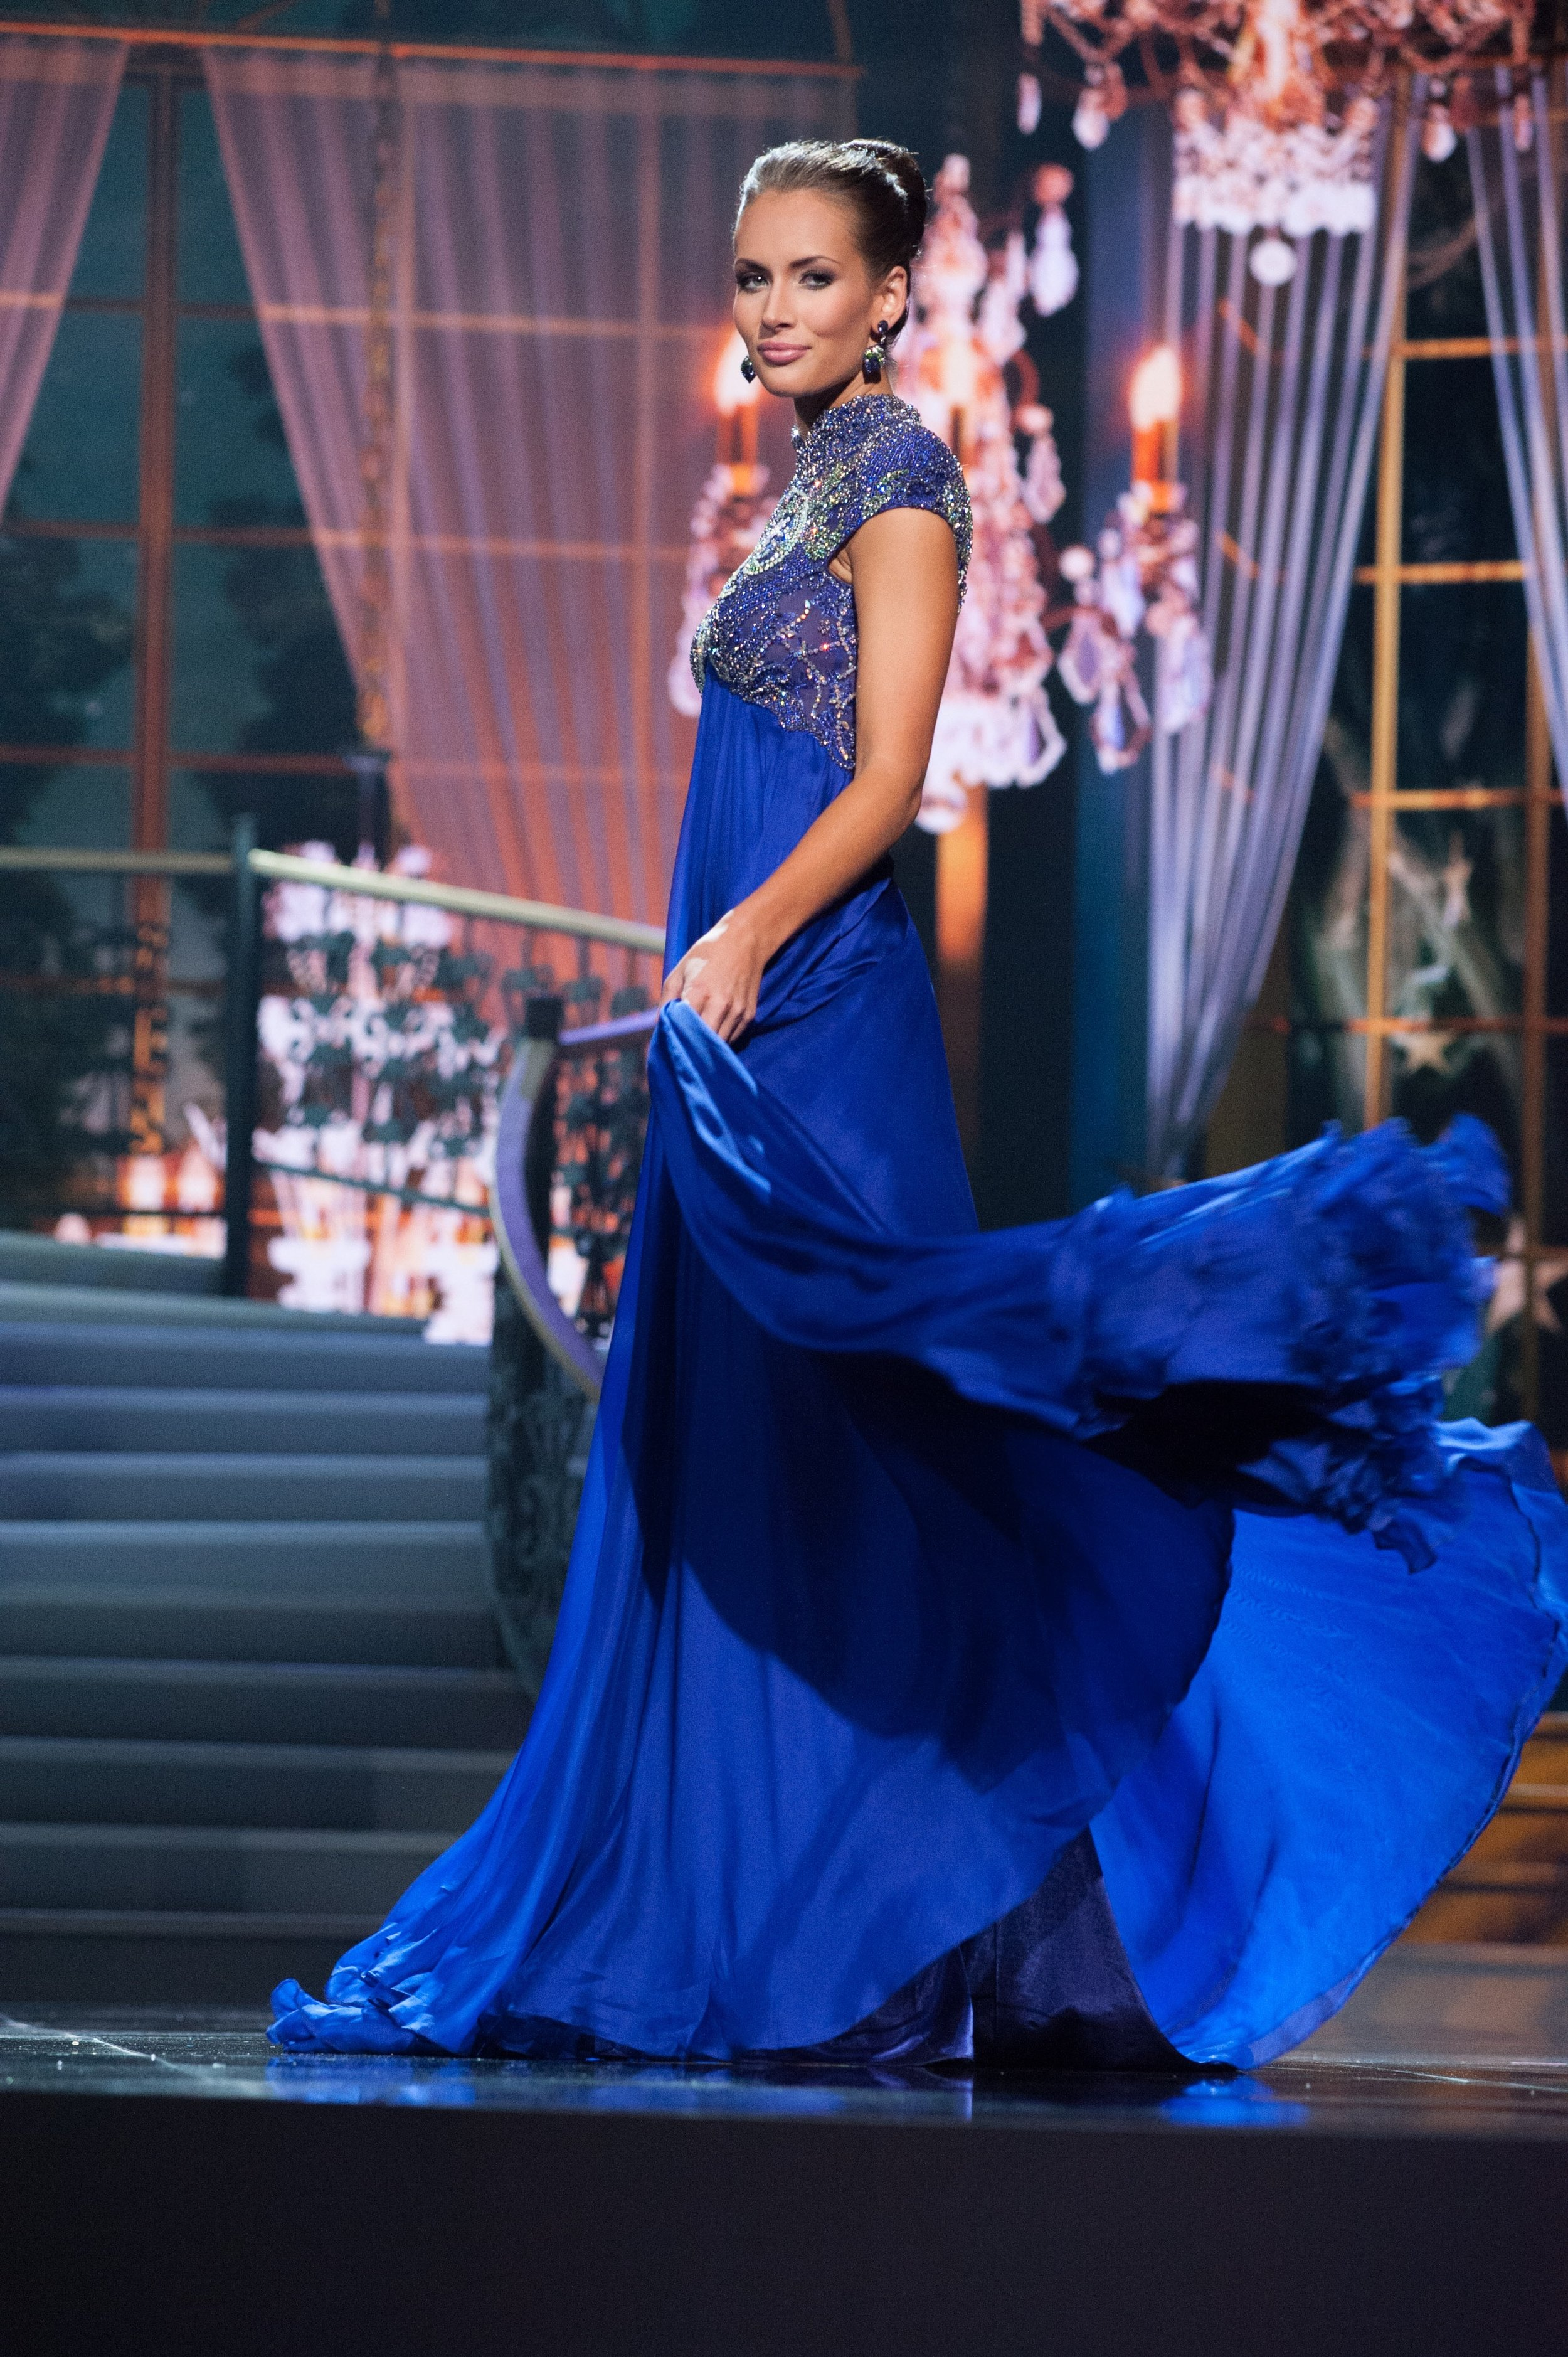 Miss Louisiana USA 2014 Brittany Guidry competing at the Miss USA Top 10 competition in Evening Gown.